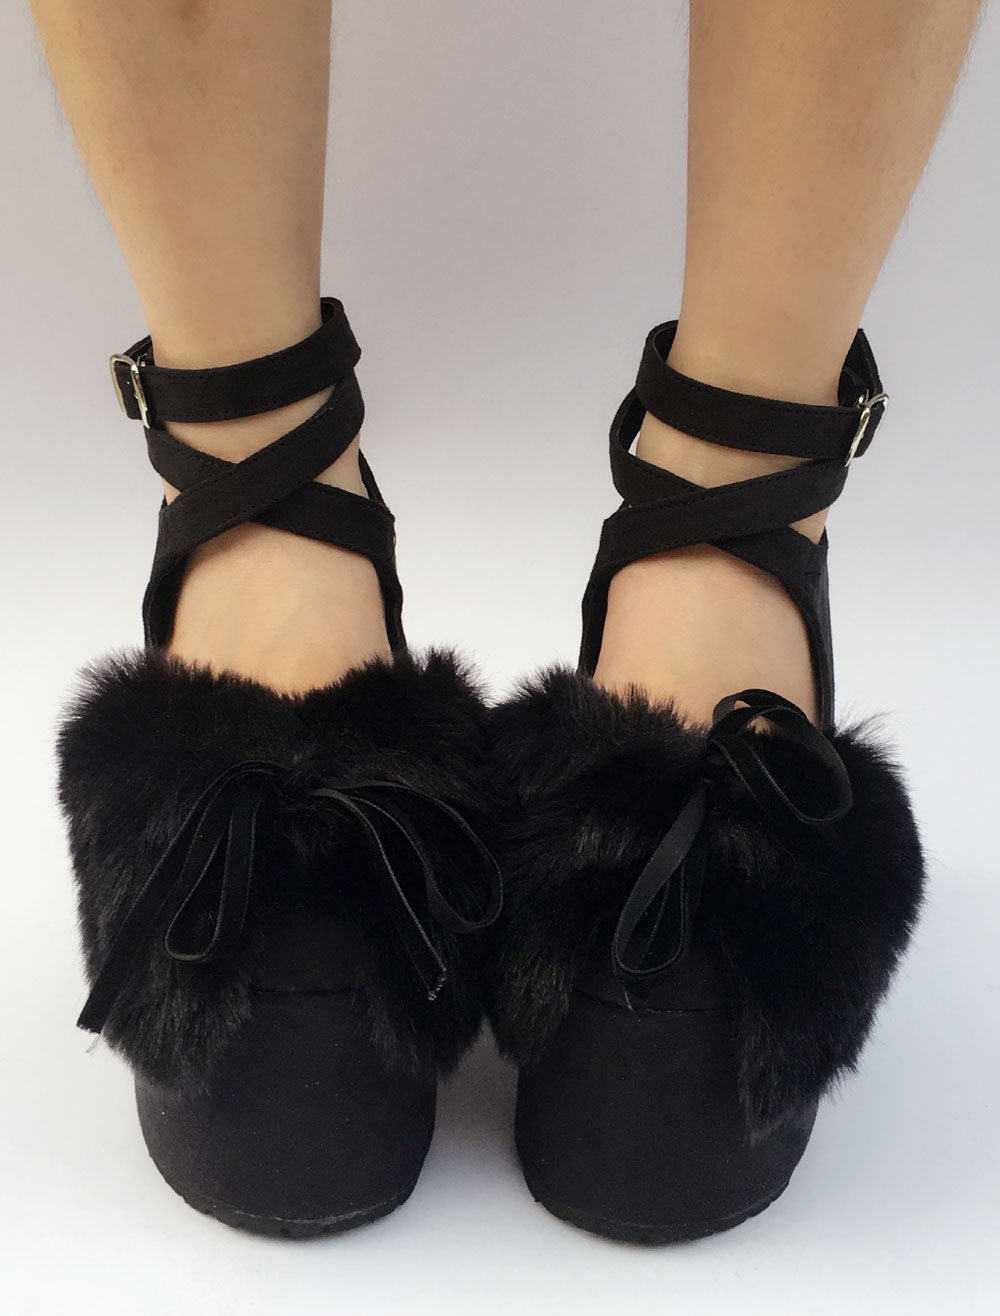 Buy Suede Lolita Shoes Black Platform Chunky Heel Faux Fur Bow Cross Front Ankle Strap Lolita Pumps for $96.99 in Milanoo store